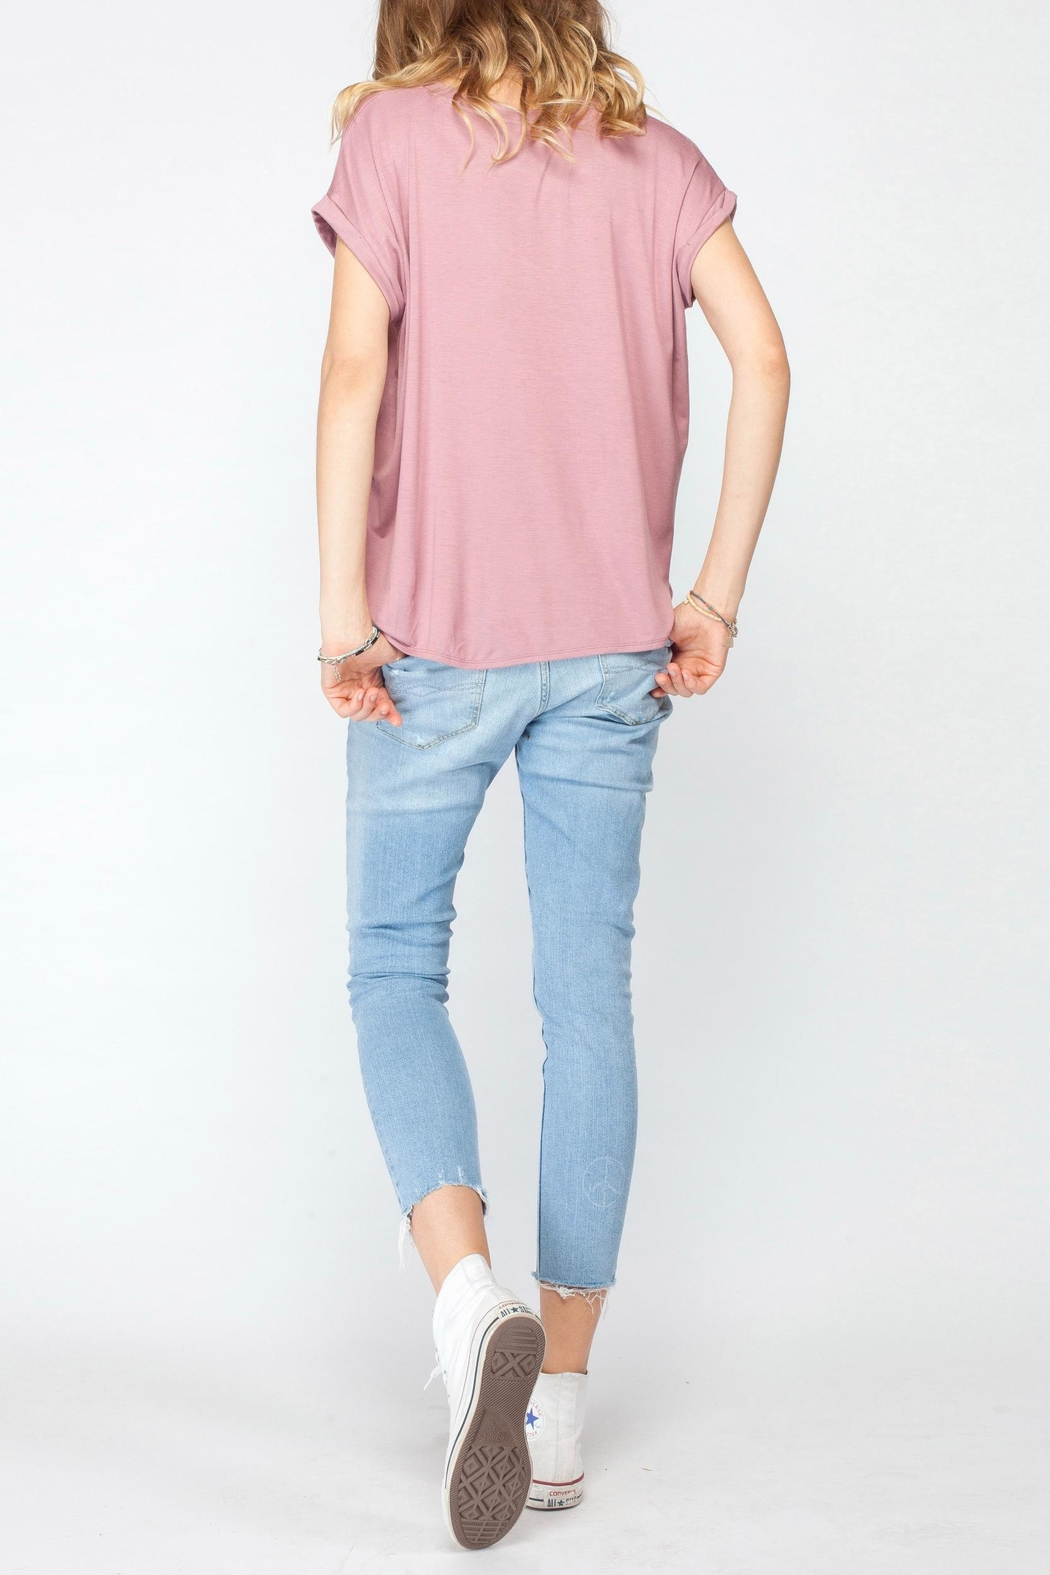 Gentle Fawn Soft Pink Basic Tee - Back Cropped Image